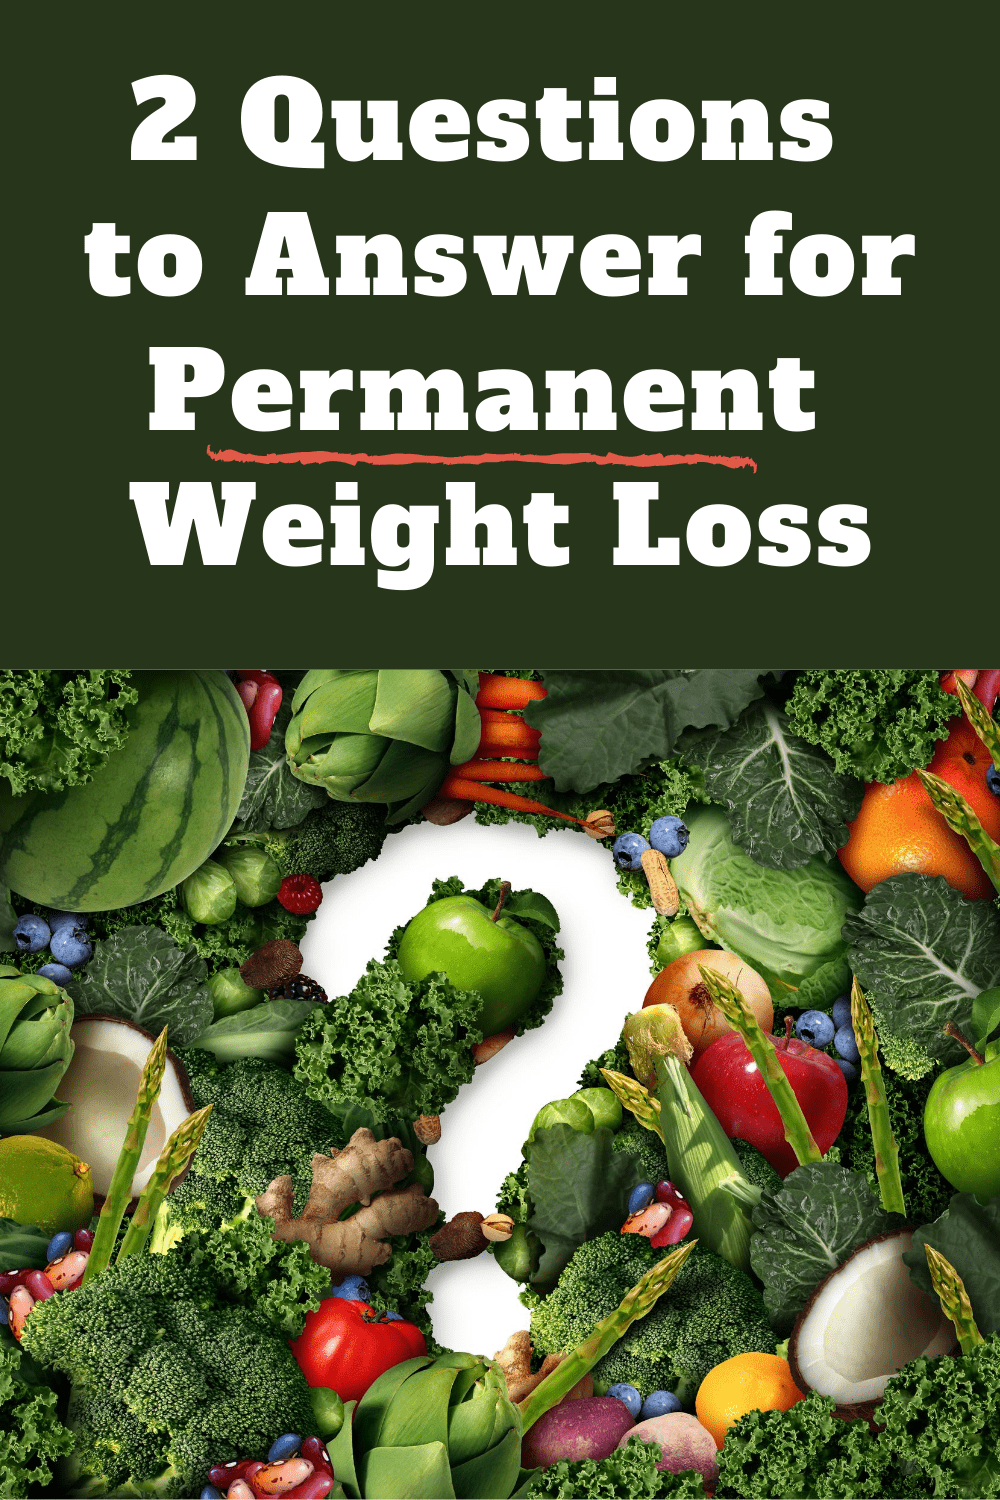 2 Questions to Answer for Permanent Weight Loss